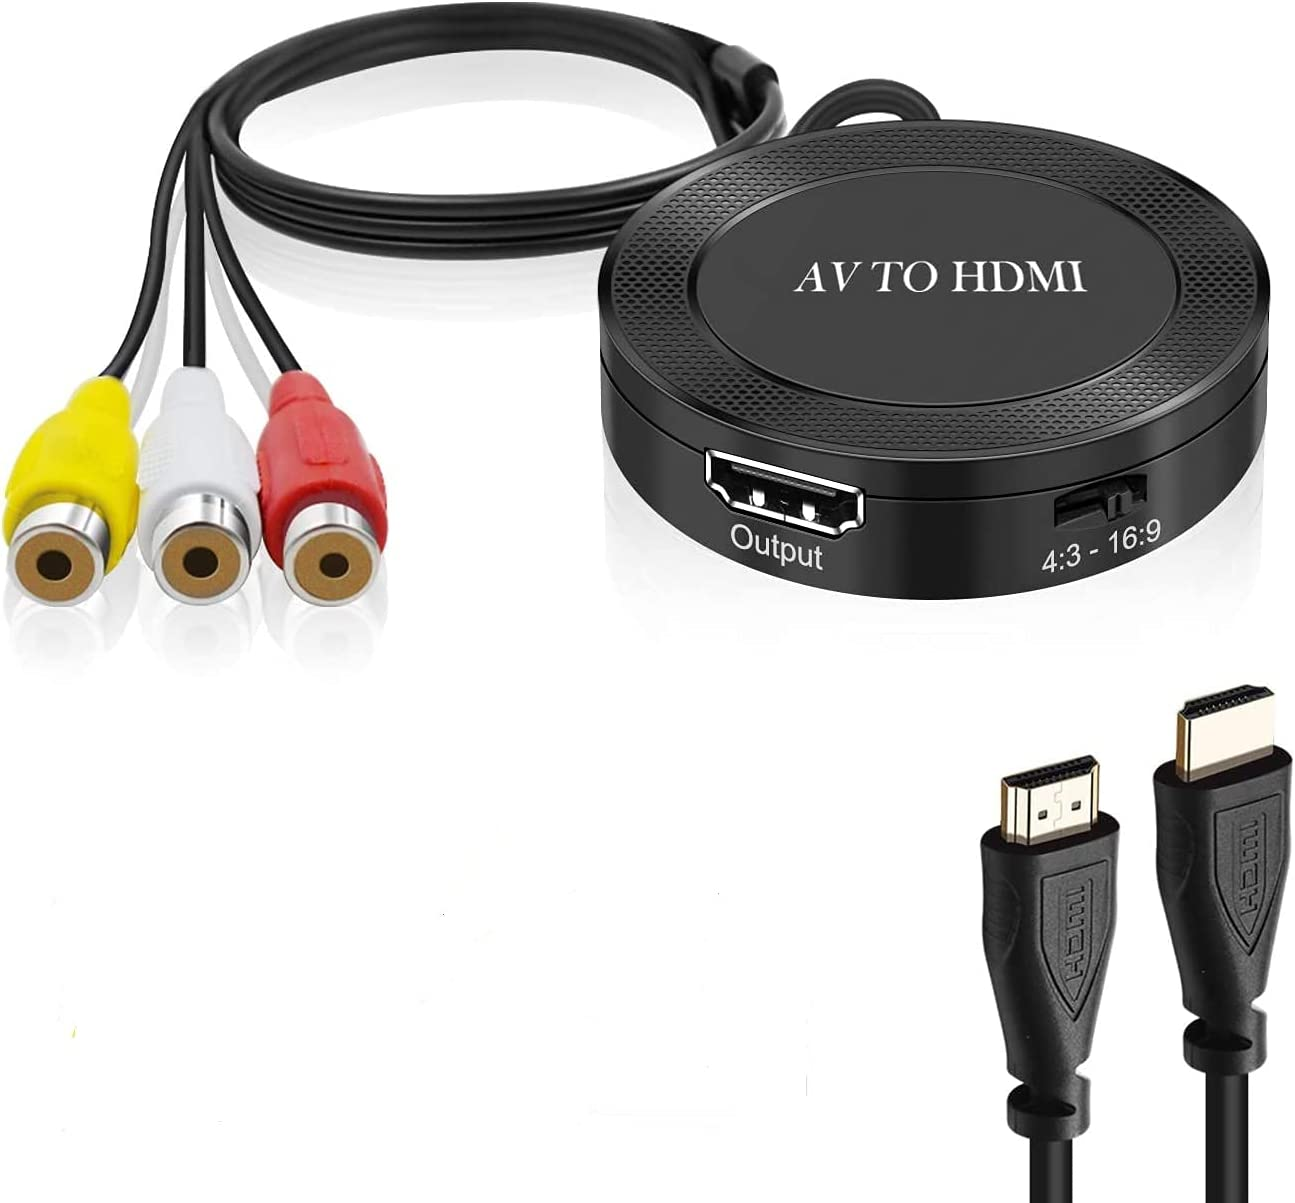 AV to HDMI RCA to HDMI Converter, Composite to HDMI Adapter Support 1080P, PAL/NTSC Compatible with N64 NGC SNES SEGA ,WII, WII U, PS1, PS2, PS3, STB, Xbox, VHS, VCR, Blue-Ray DVD …